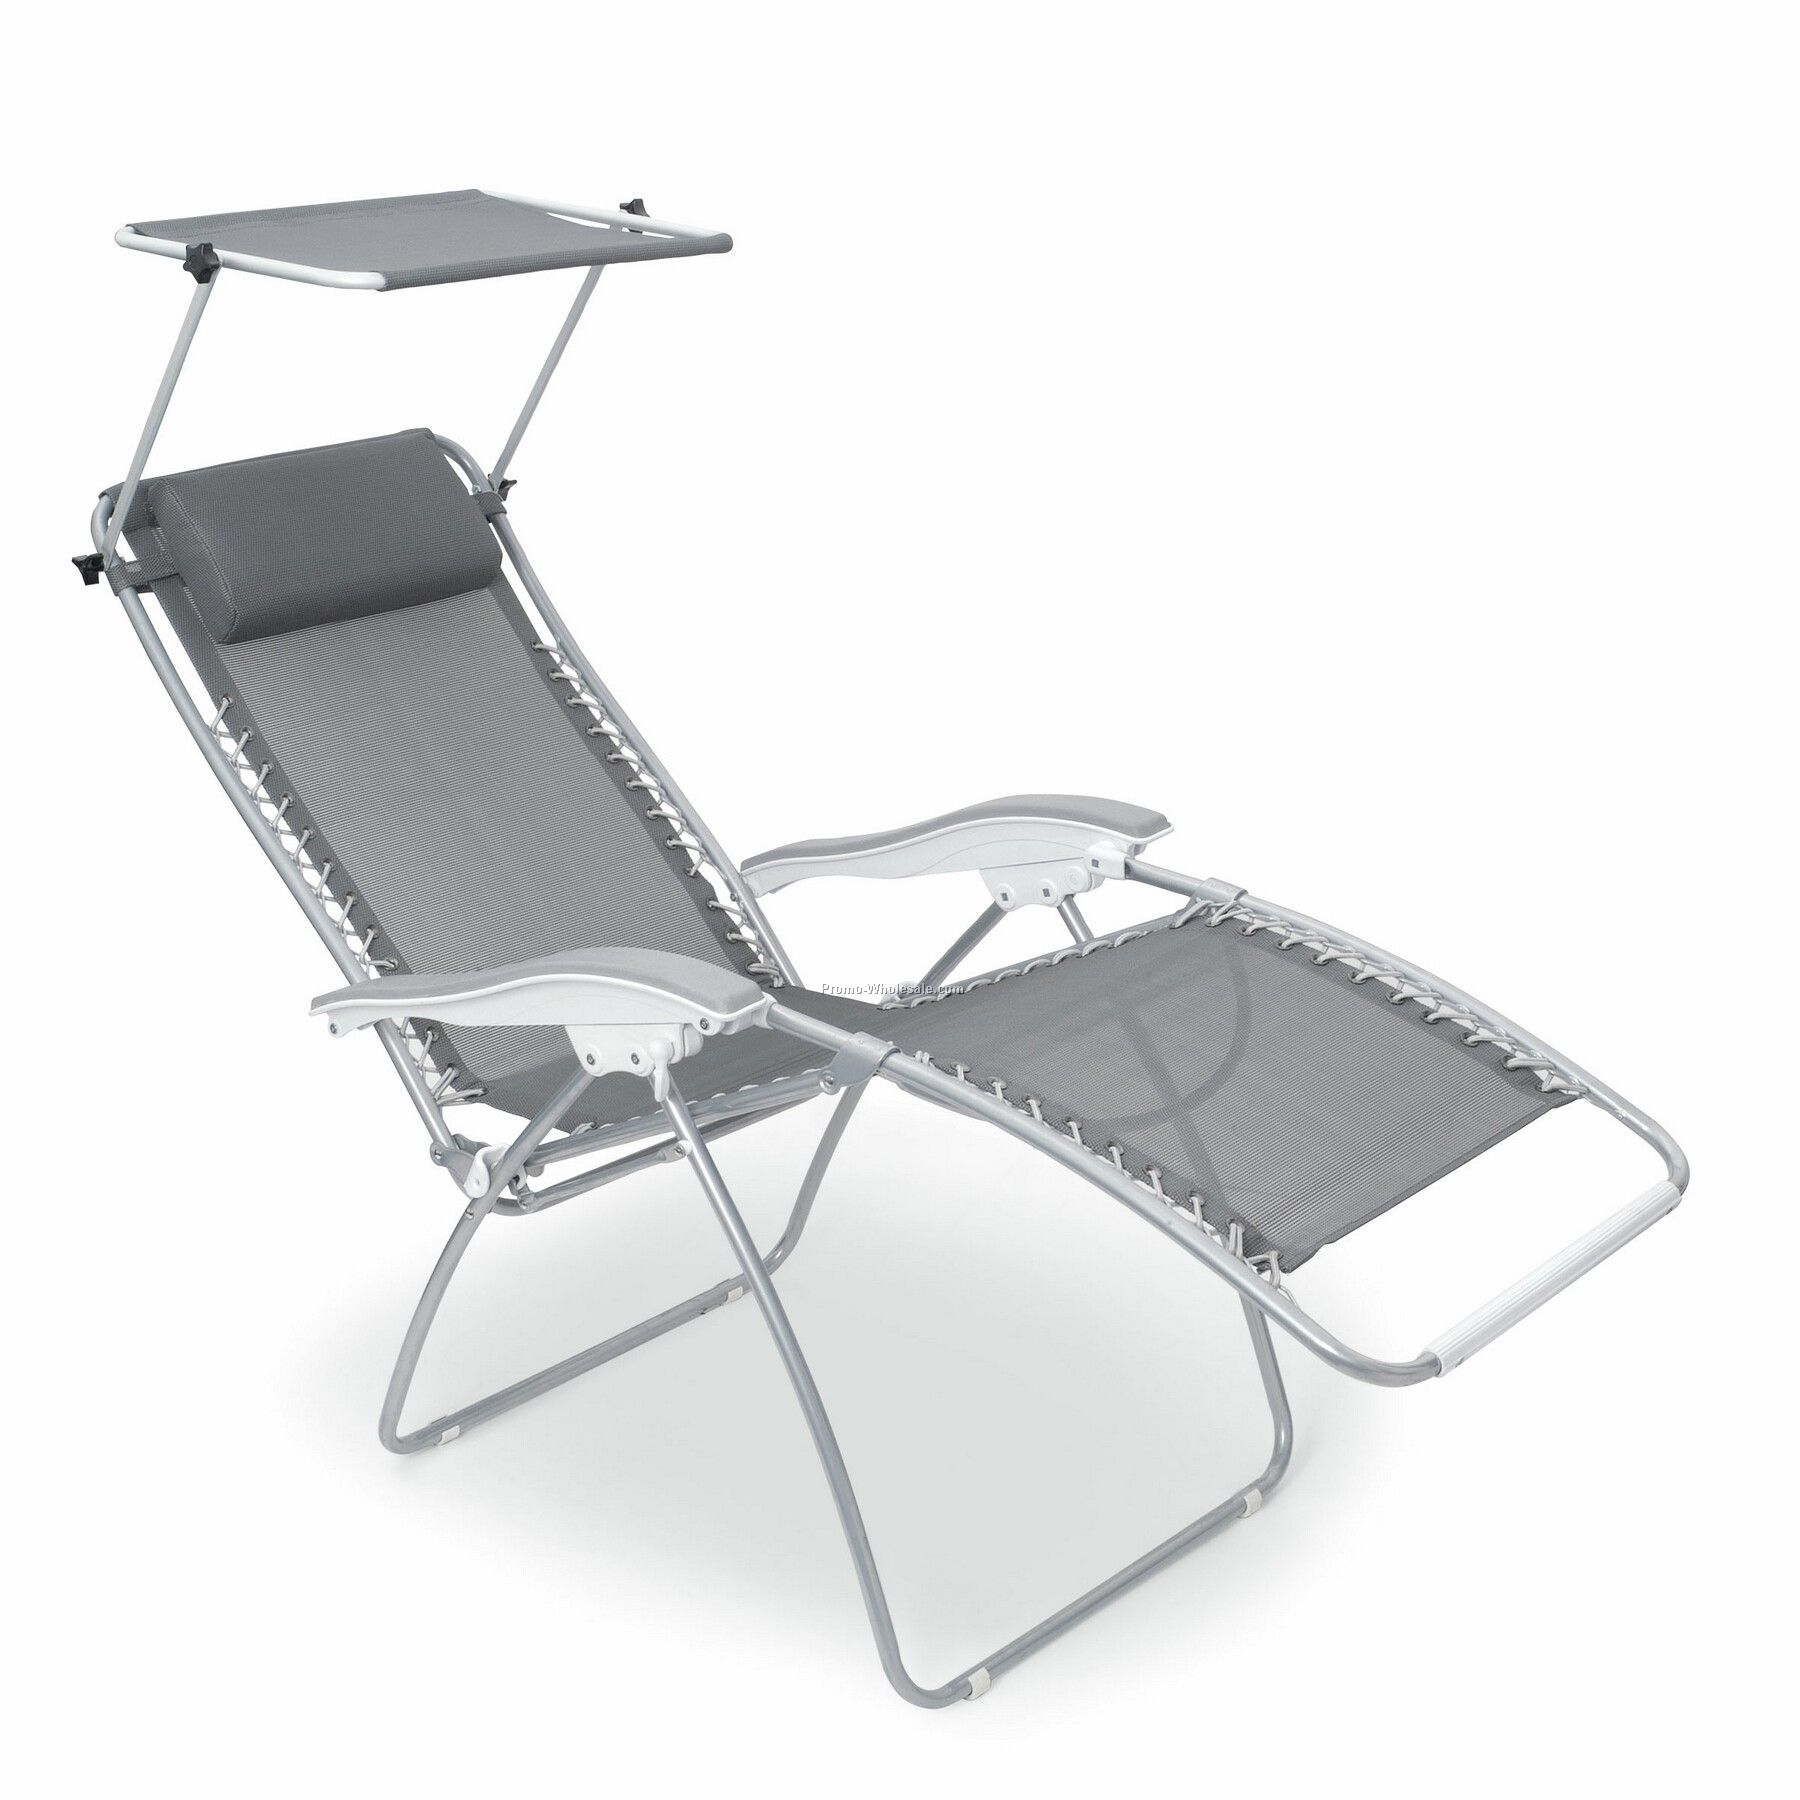 Serenity Reclining Lounge Chair With Adjustable Sunshade Wholesale China